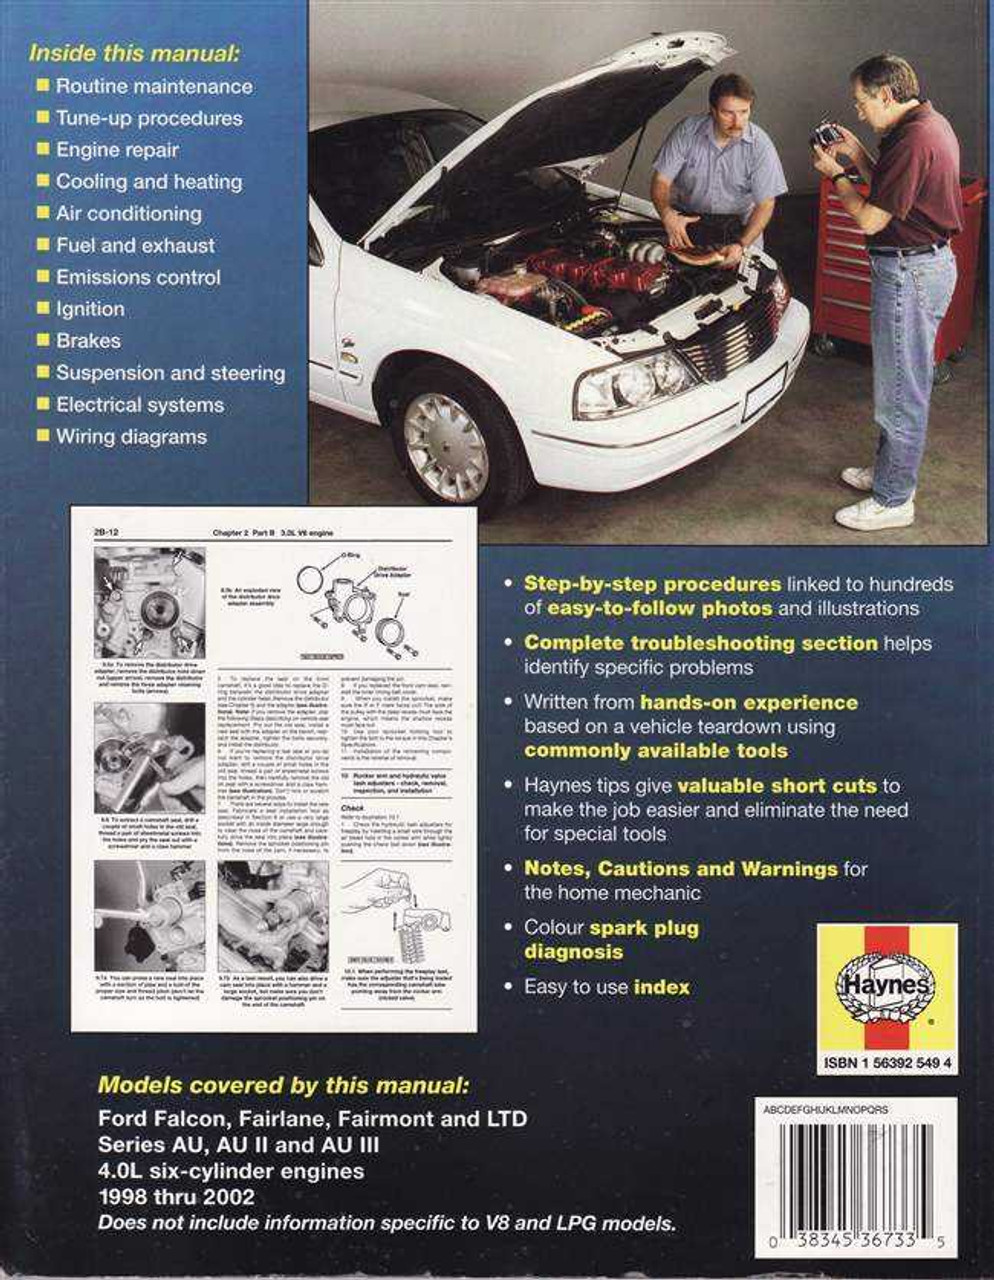 Ford Falcon / Fairlane AU, AU II, AU III 1998 - 2002 Workshop Manual